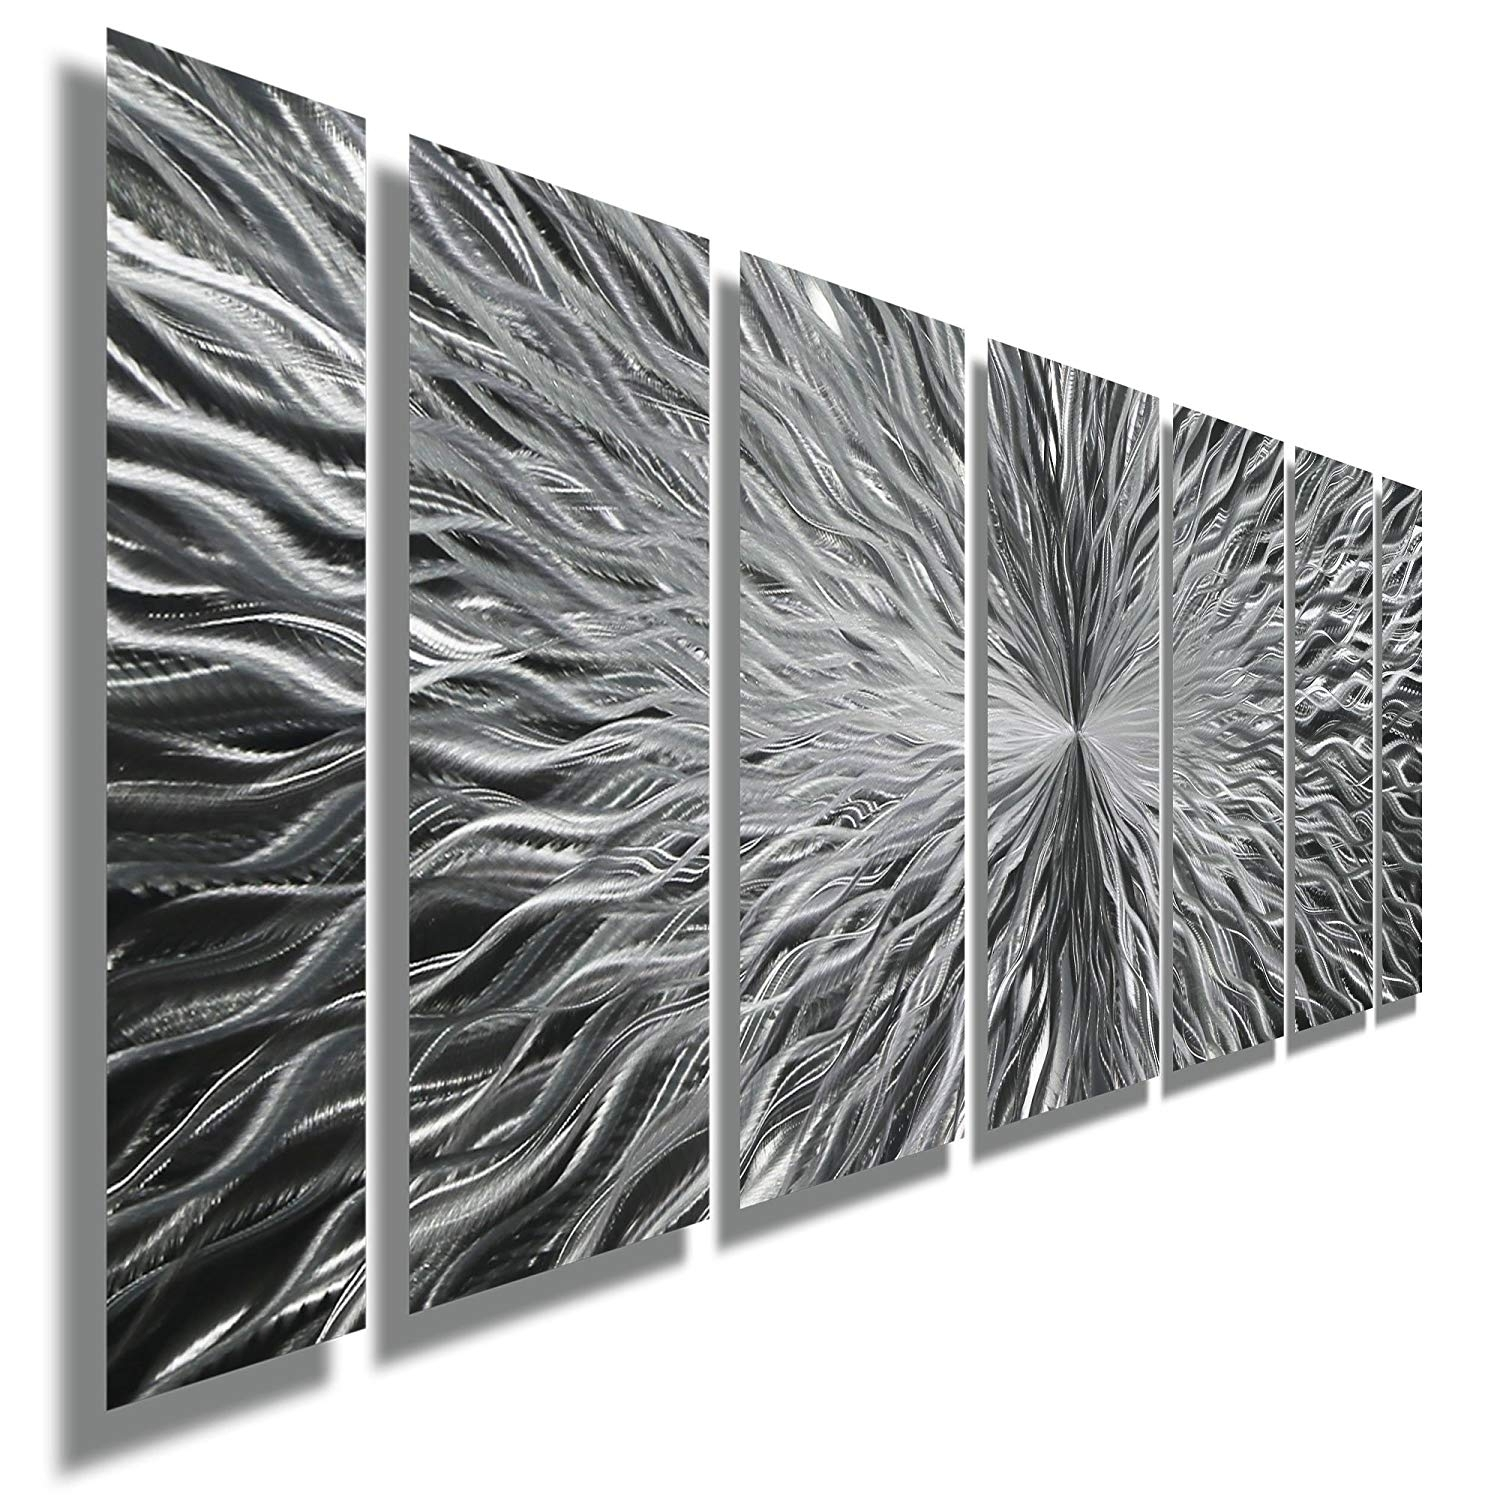 Amazon: Silver Contemporary Metal Wall Art - Abstract Home Decor regarding Contemporary Metal Wall Art (Image 5 of 20)